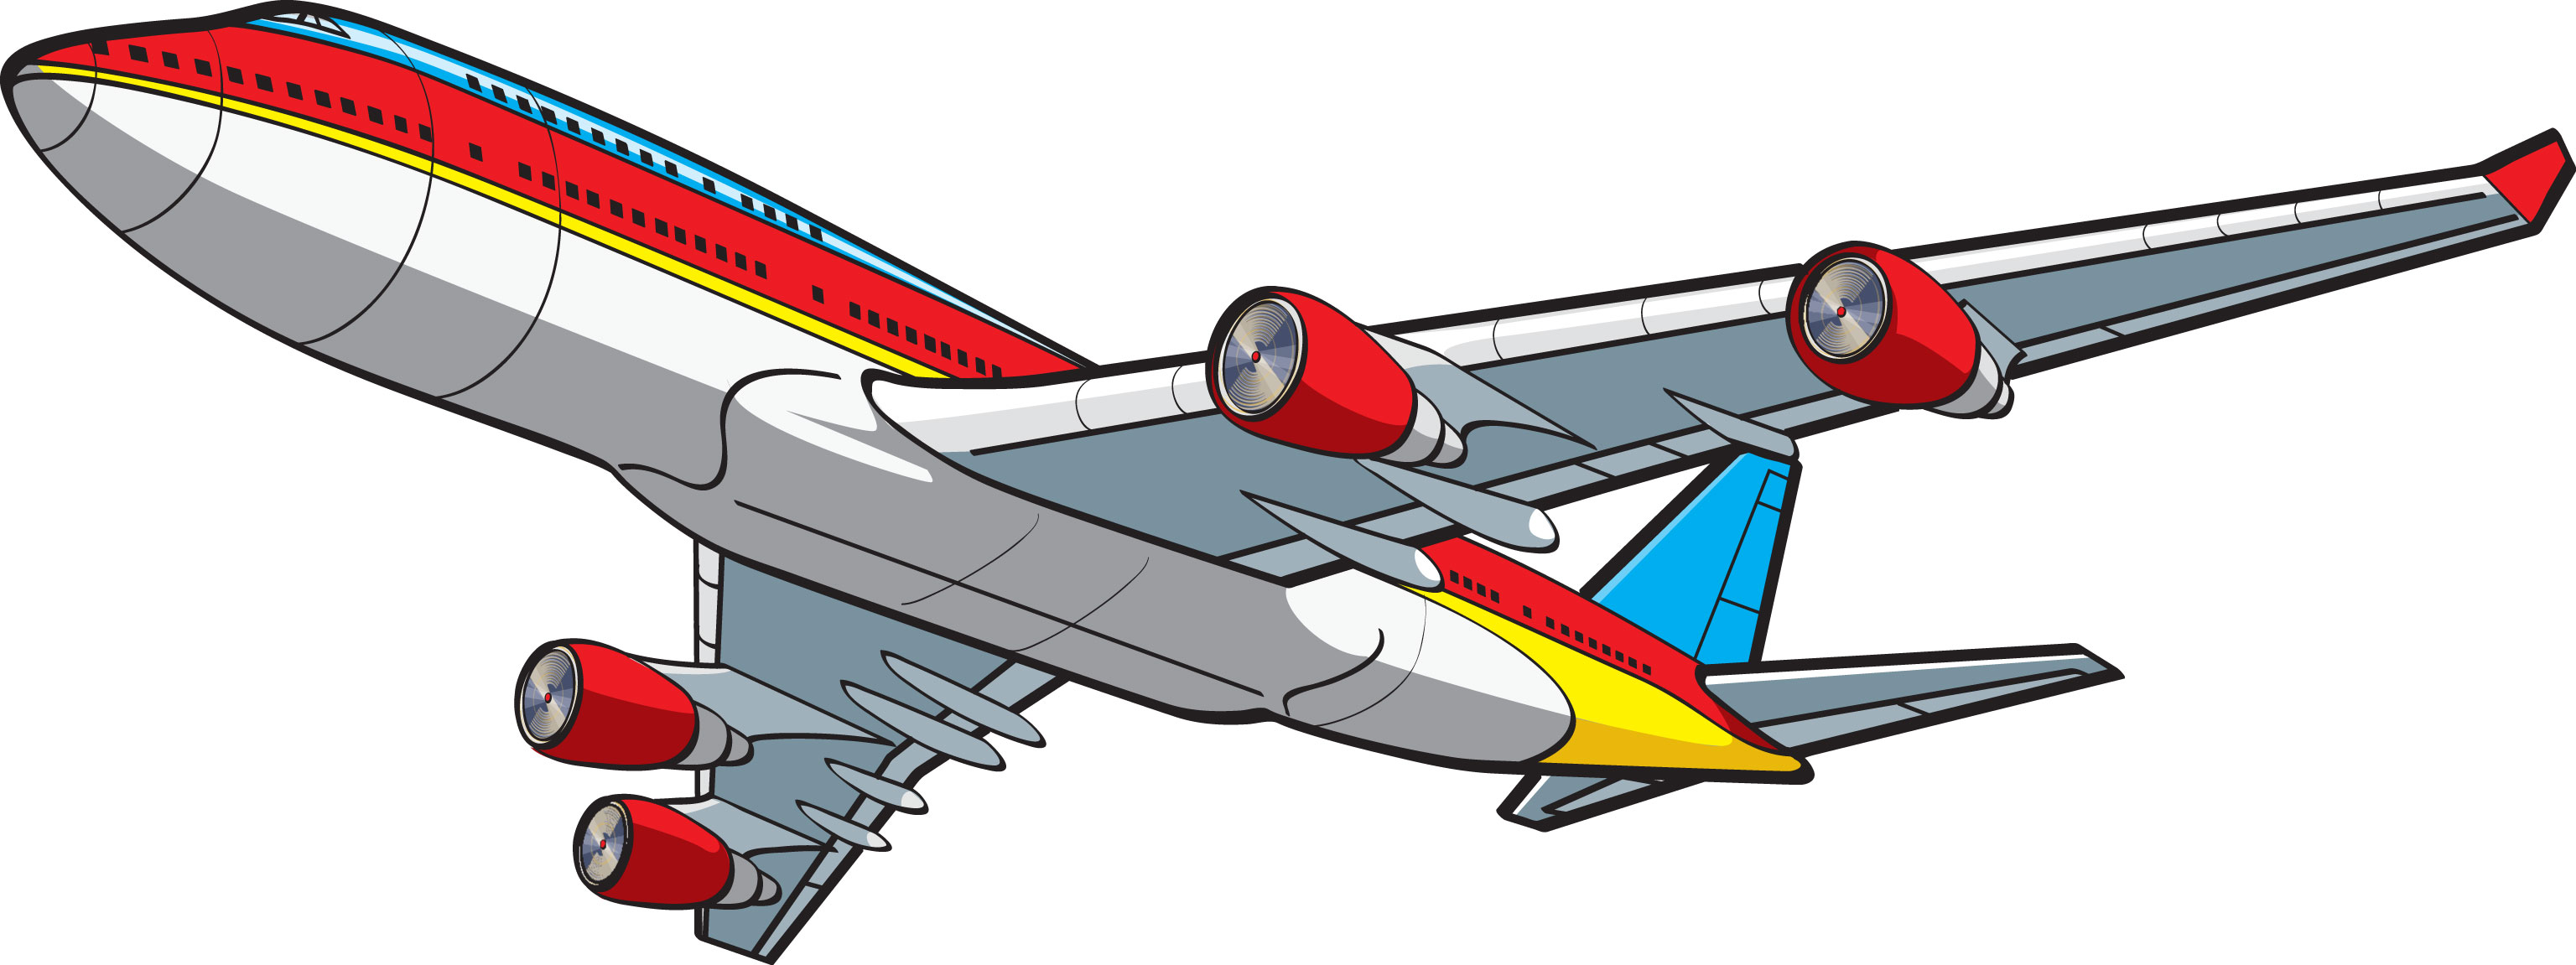 Airplane Cartoon Png | Free download on ClipArtMag